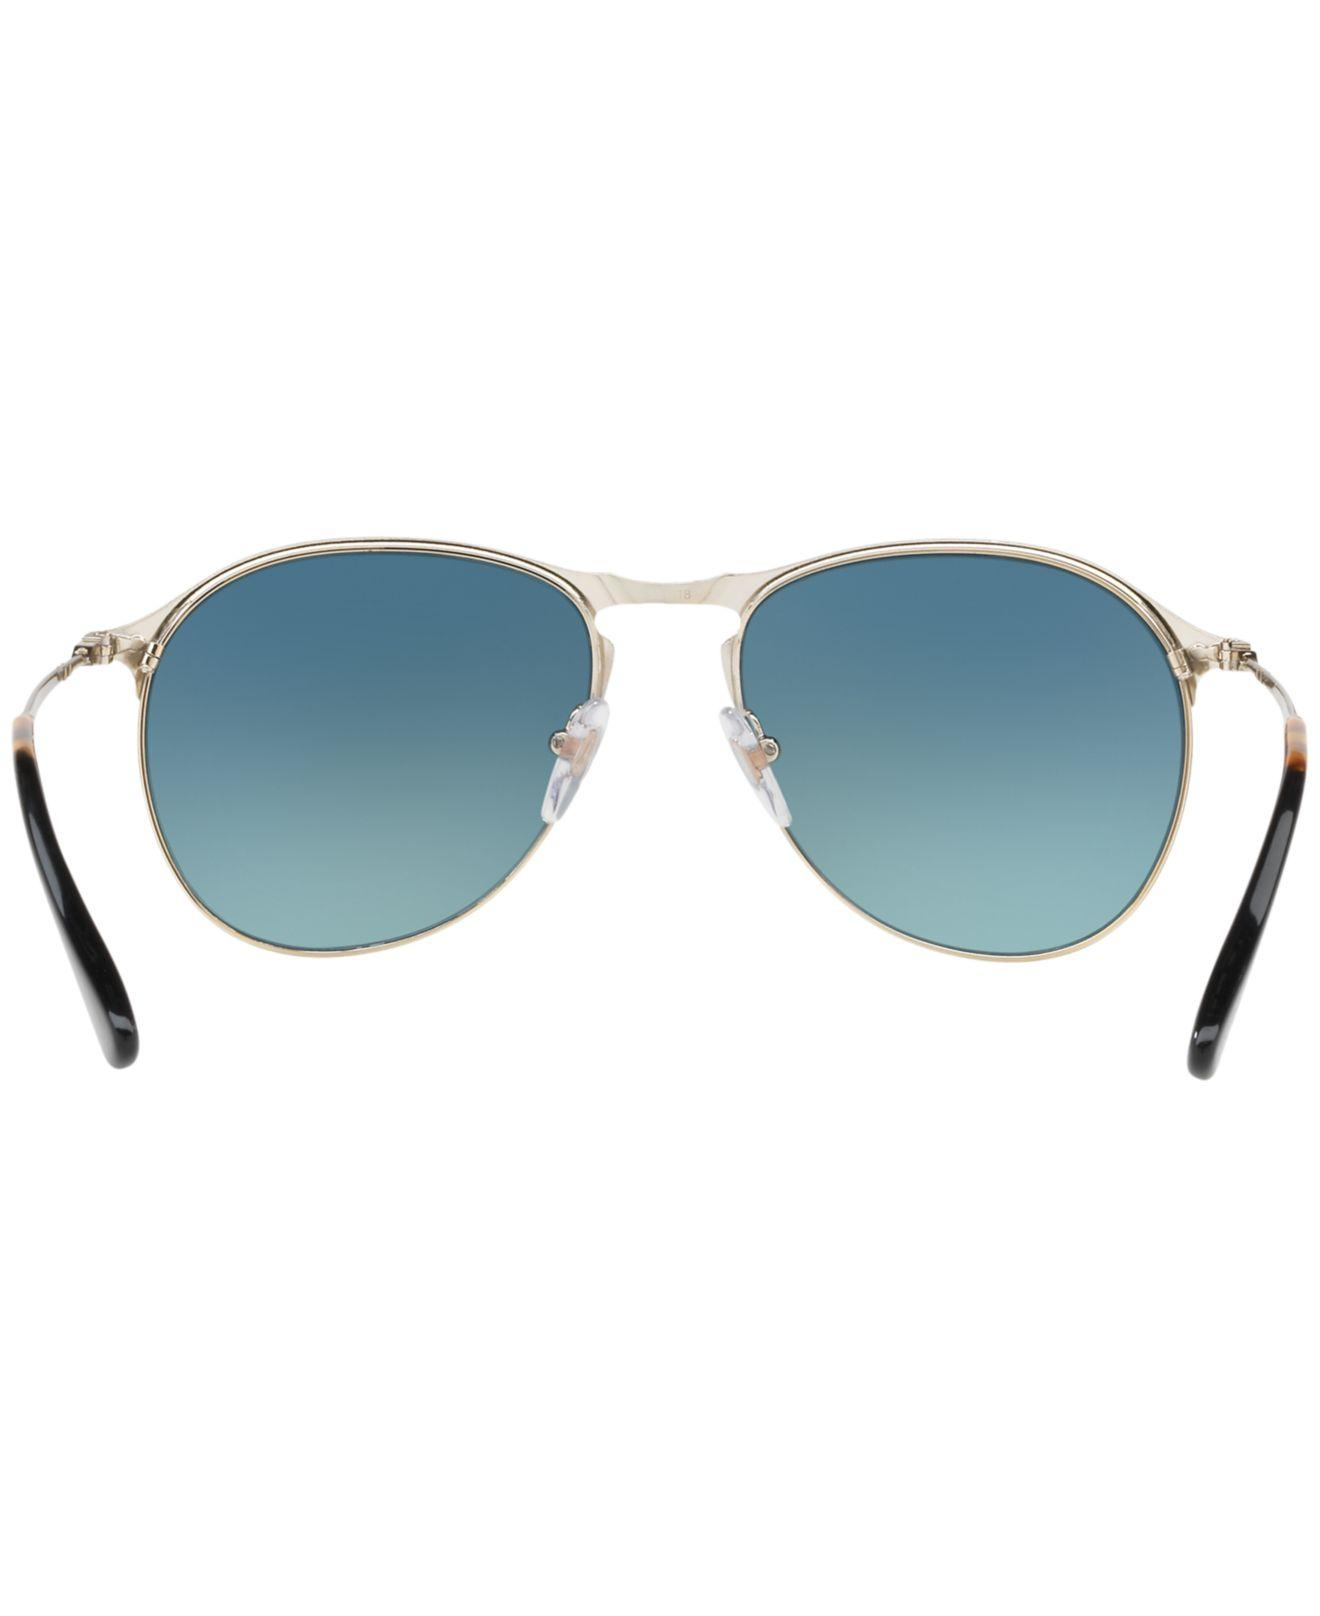 f1f0f9bff91d1 Persol Po7649s in Blue for Men - Lyst